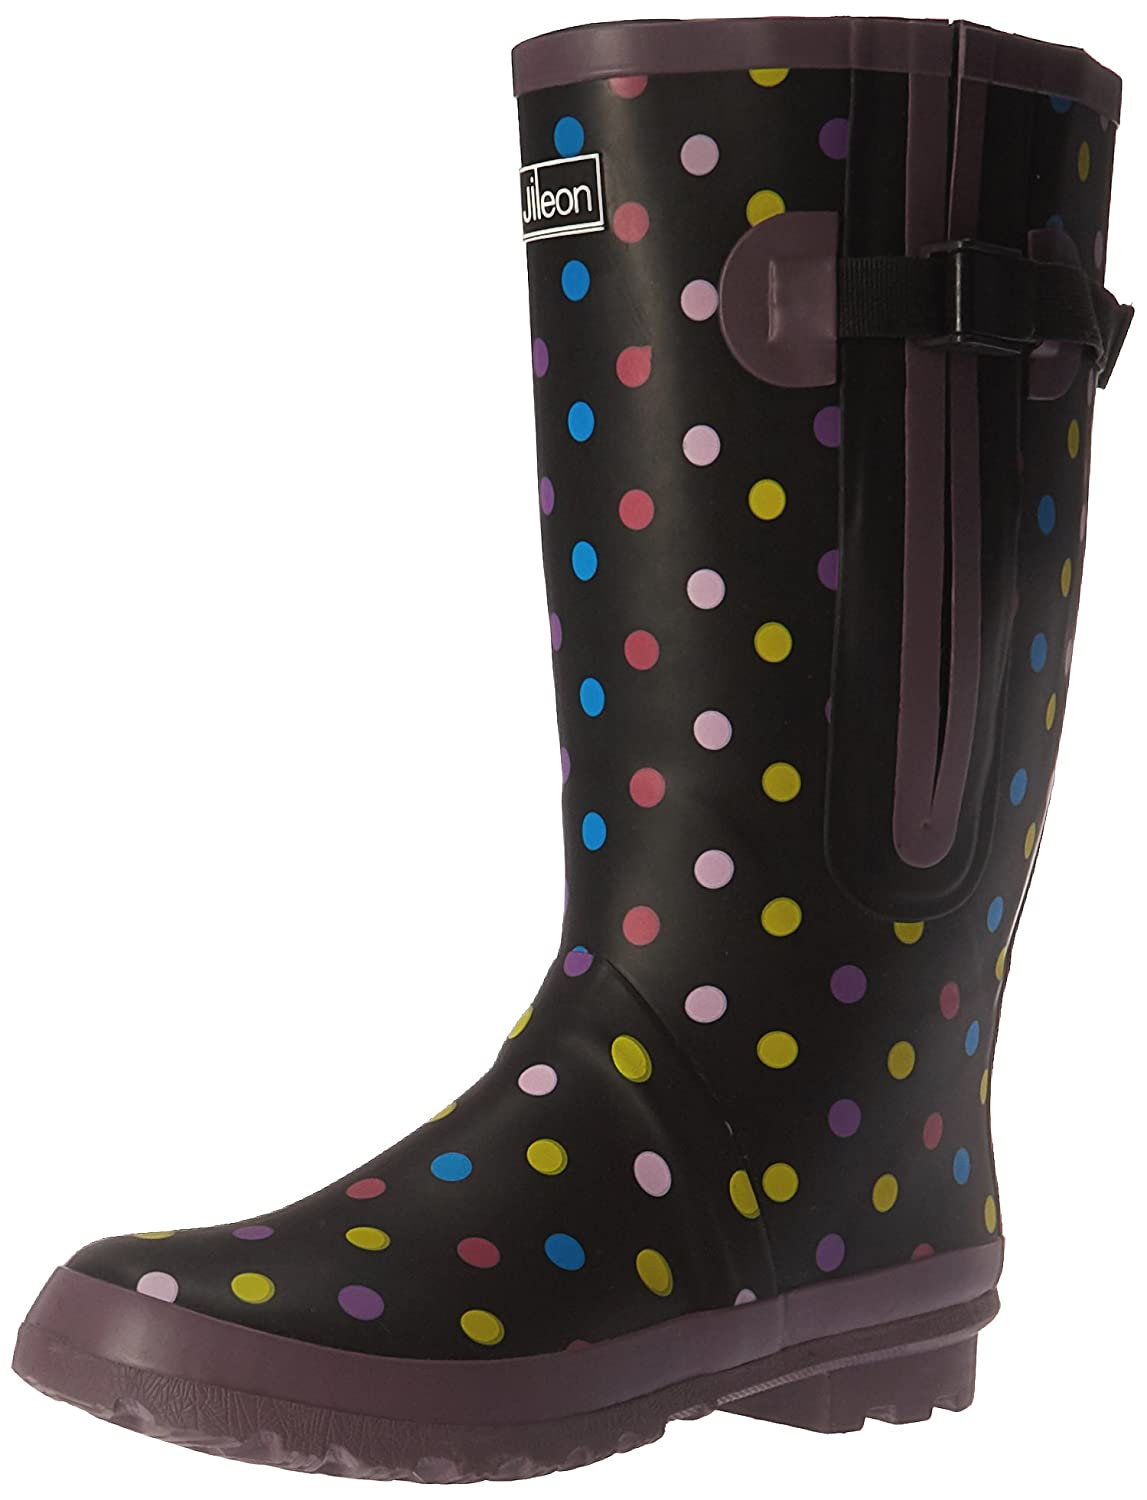 Extra Wide Calf Spotty Rain Boots for Women, fit up to 21 inch calf, Knee High Waterproof